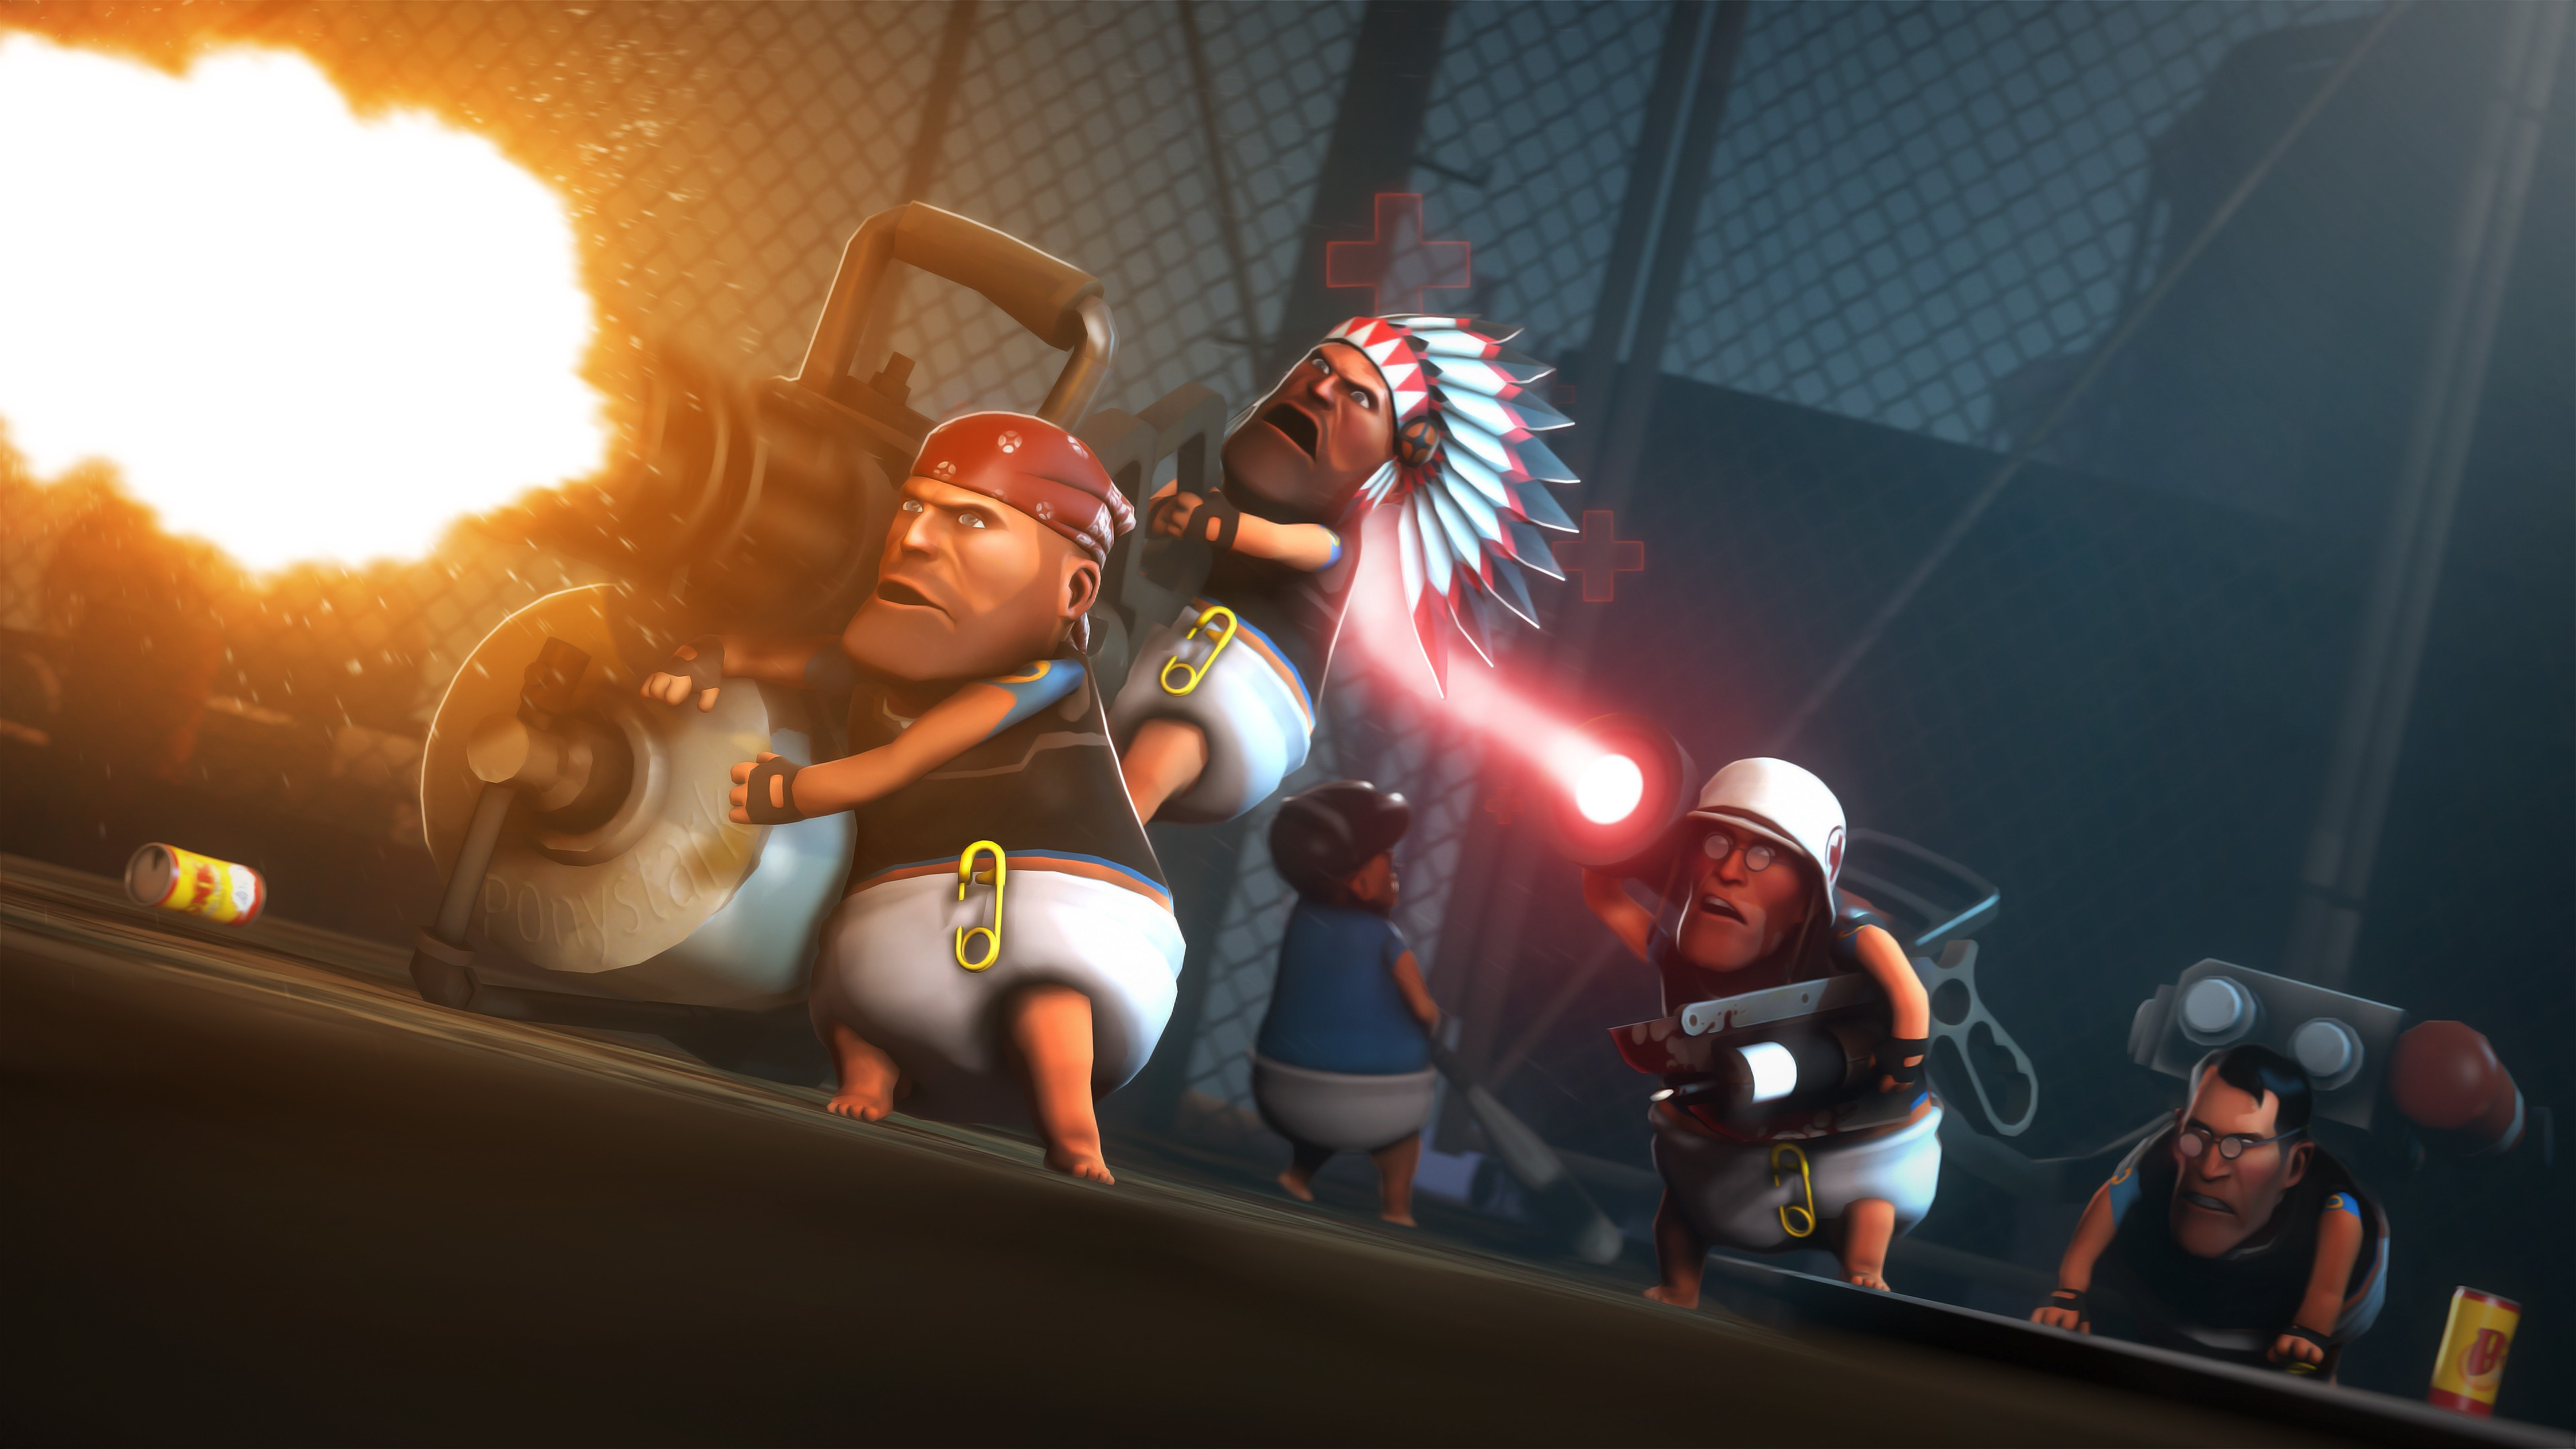 Wallpaper Team Fortress 2  Tf2  Fps  Mod  Baby